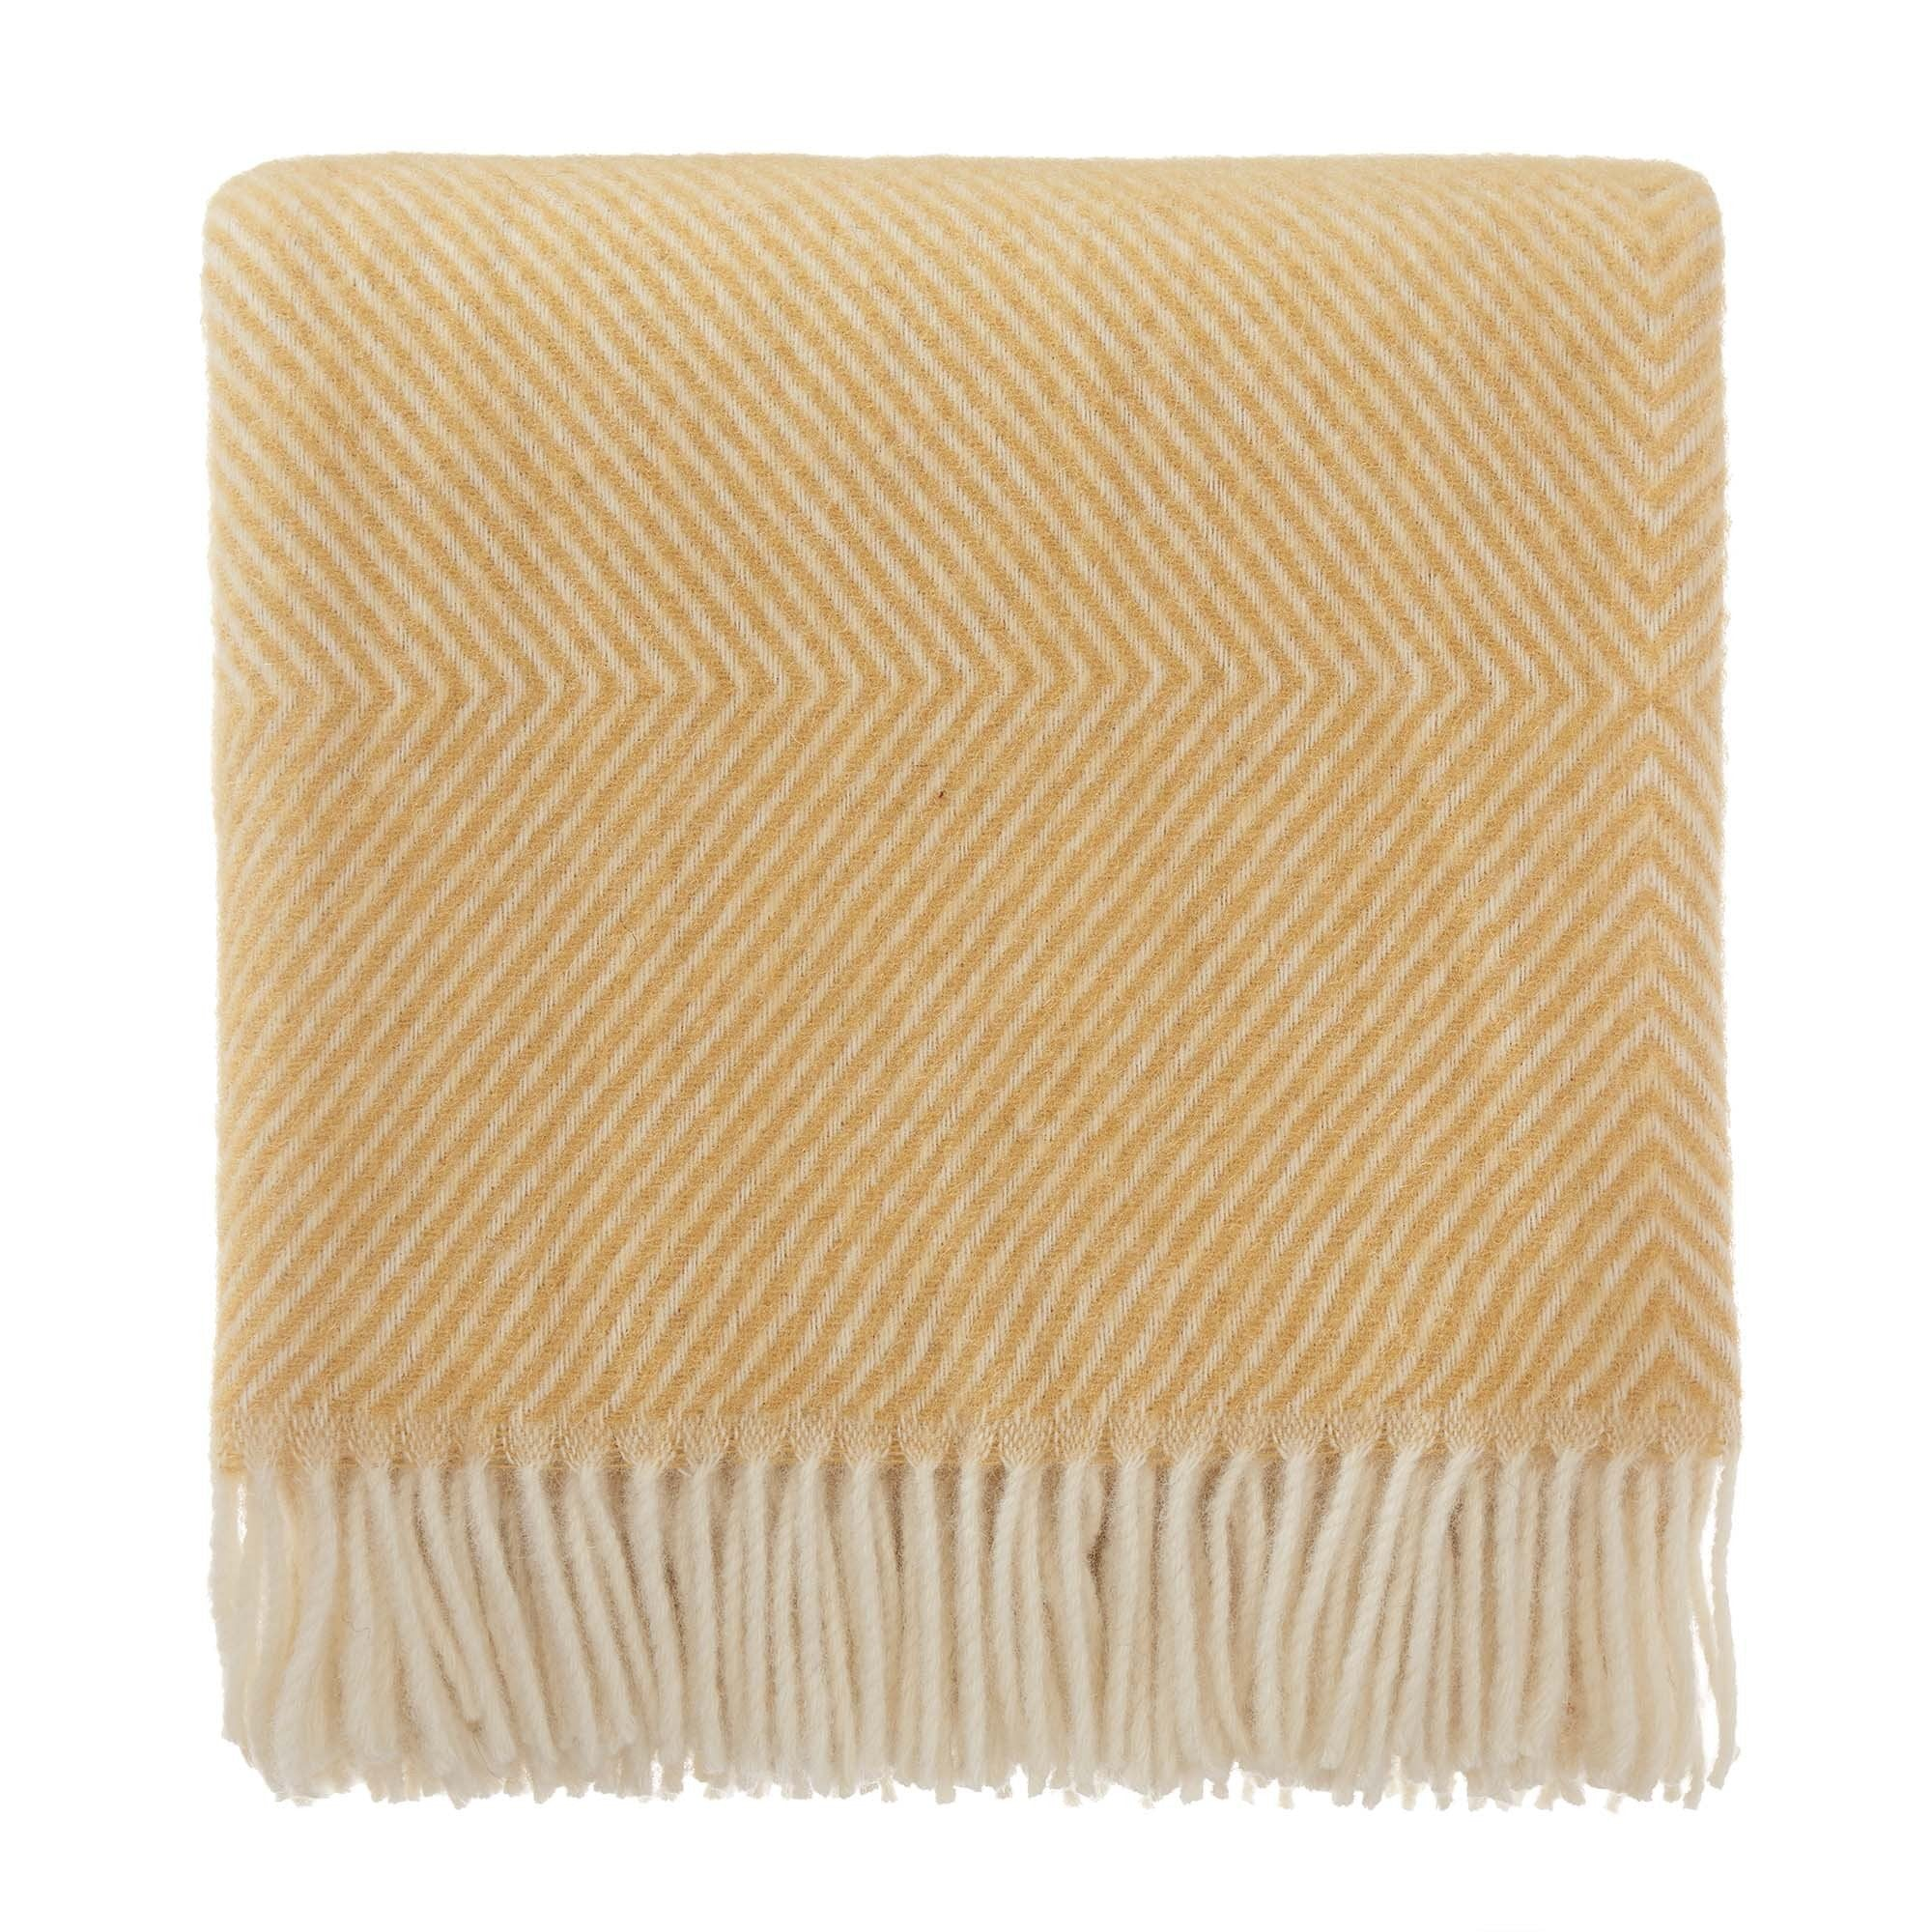 Gotland Wool Blanket mustard & cream, 100% new wool